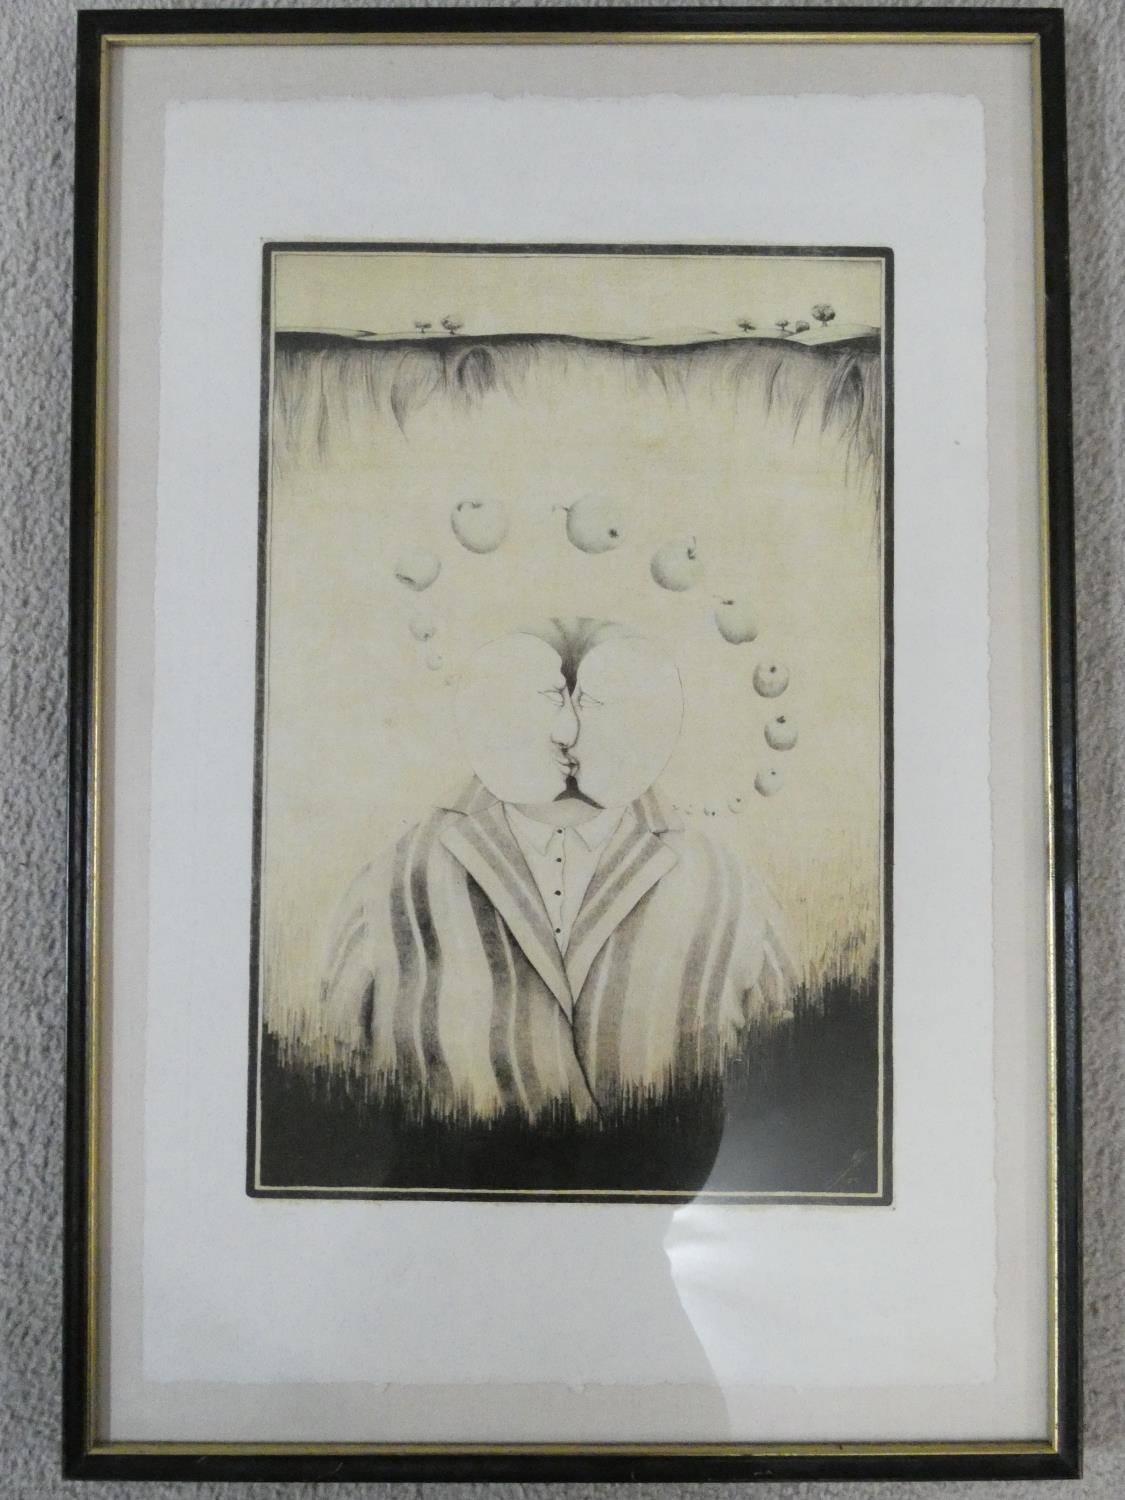 A framed and glazed surrealist signed print of two figures kissing surrounded by a halo of apples. - Image 2 of 5